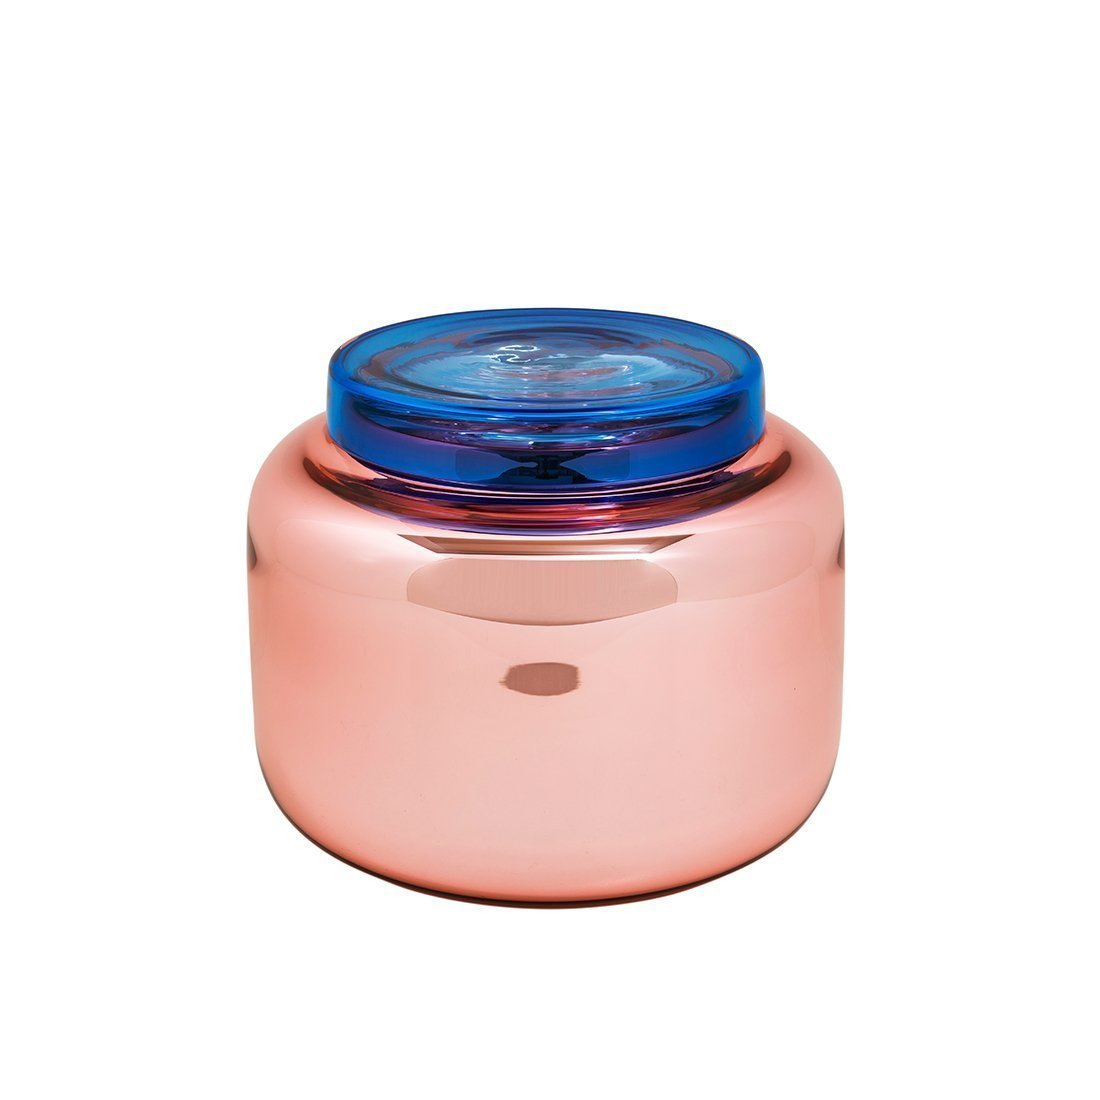 Pulpo Container Low Vaas - Roze Blauw